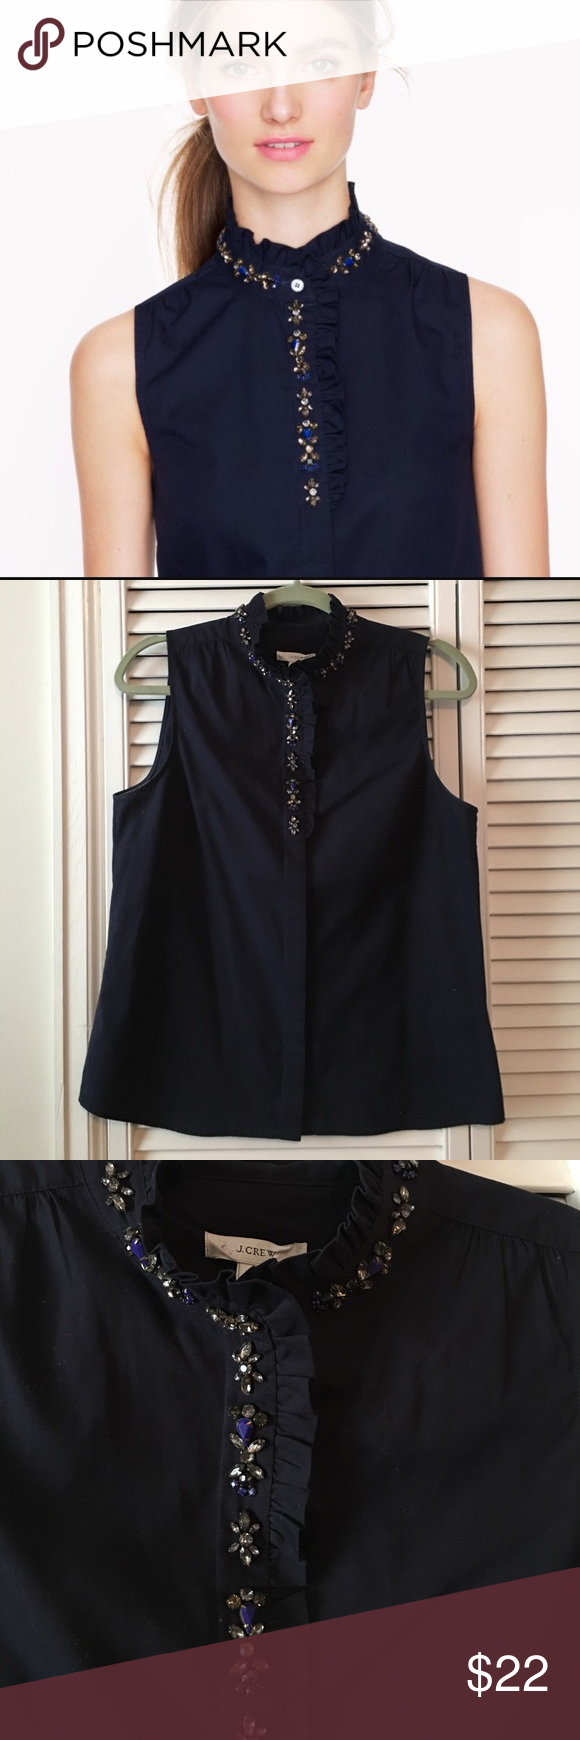 J.Crew Navy Rhinestone Collar Top Great condition, only worn once! Measurements lying flat: -pit to pit:20' and shoulder to hem:25'. All rhinestones in place, lovely navy color. Collar has a small ruffle and shirt buttons down the front, but the buttons are hidden. Worn alone or layered under a sweater, this is a super cute shirt. Looser fits, I would say fits an 8 loosely and a 10 well. J. Crew Tops Button Down Shirts